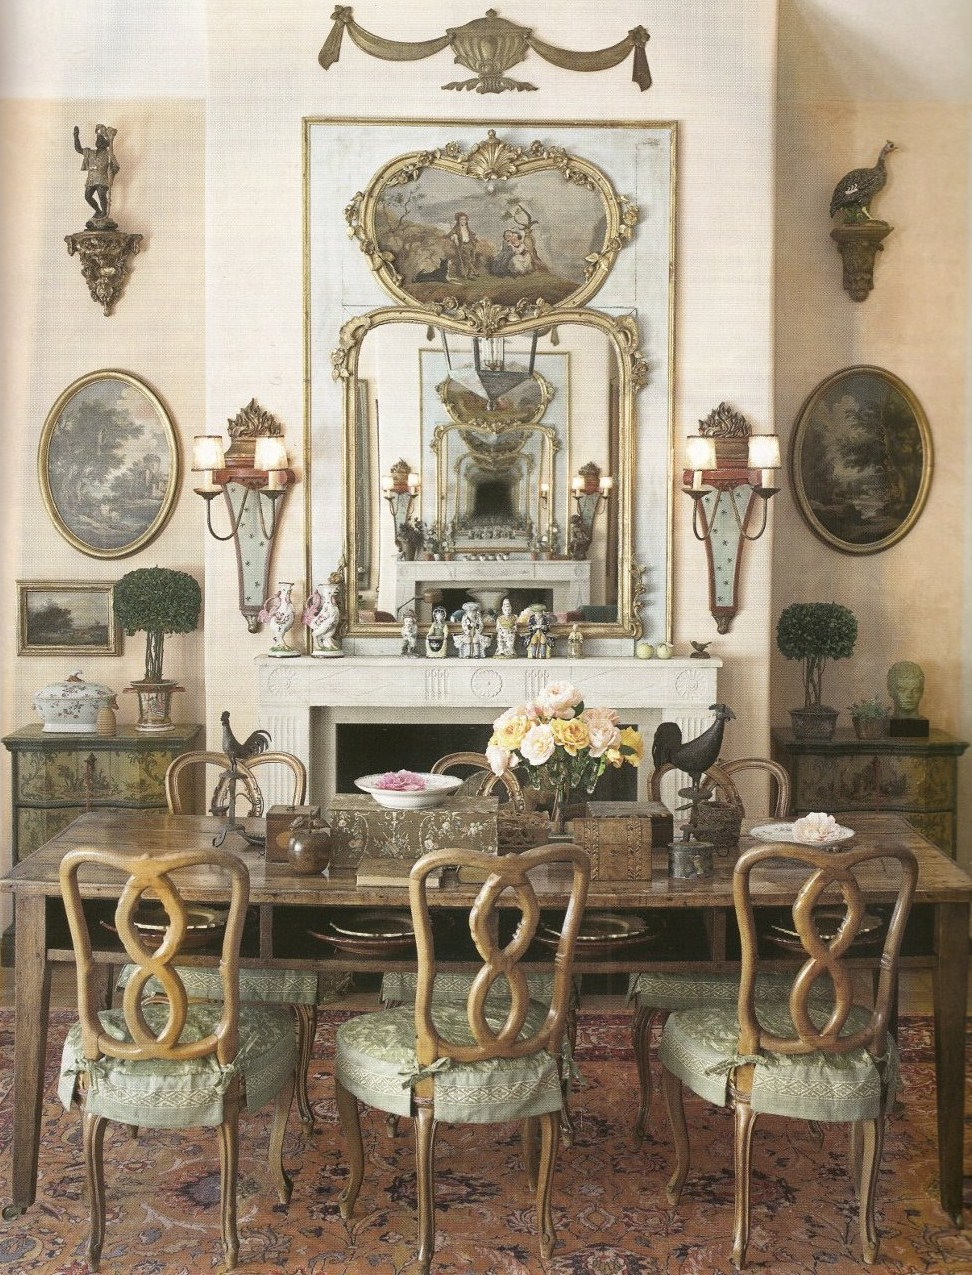 French provincial furniture decorating ideas designer penelope bianchi seen in home beautiful - Decoration furniture ...